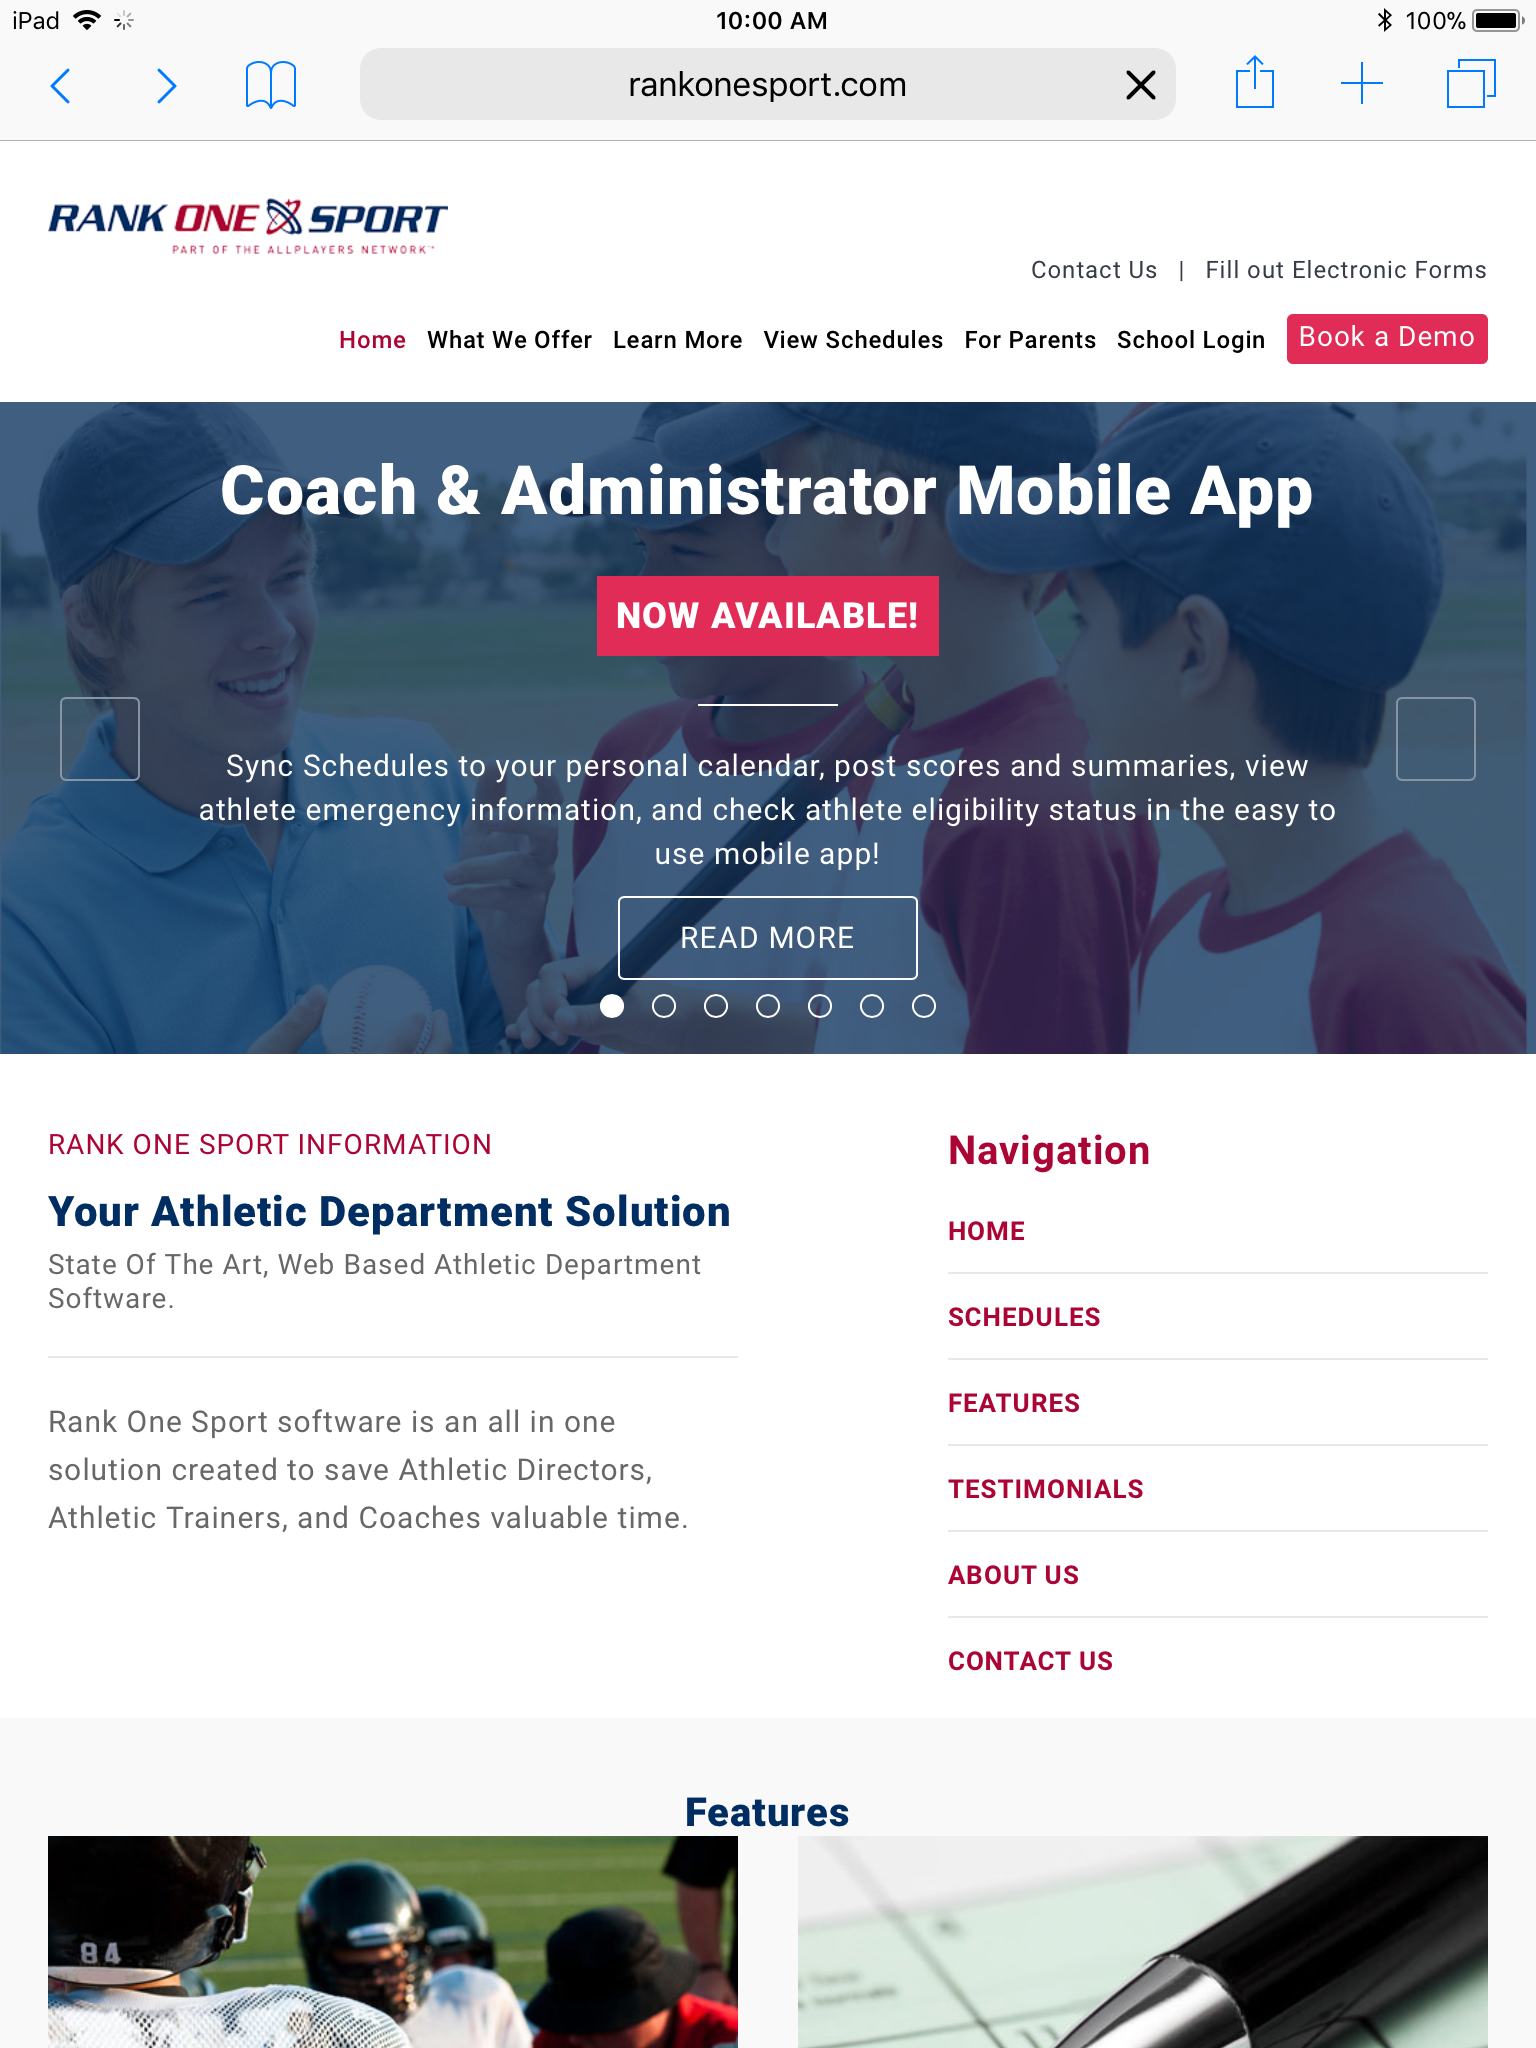 Electronic forms online and available to be filled out for the 2018-2019 school year at Rankonesport.com, step by step directions explained.